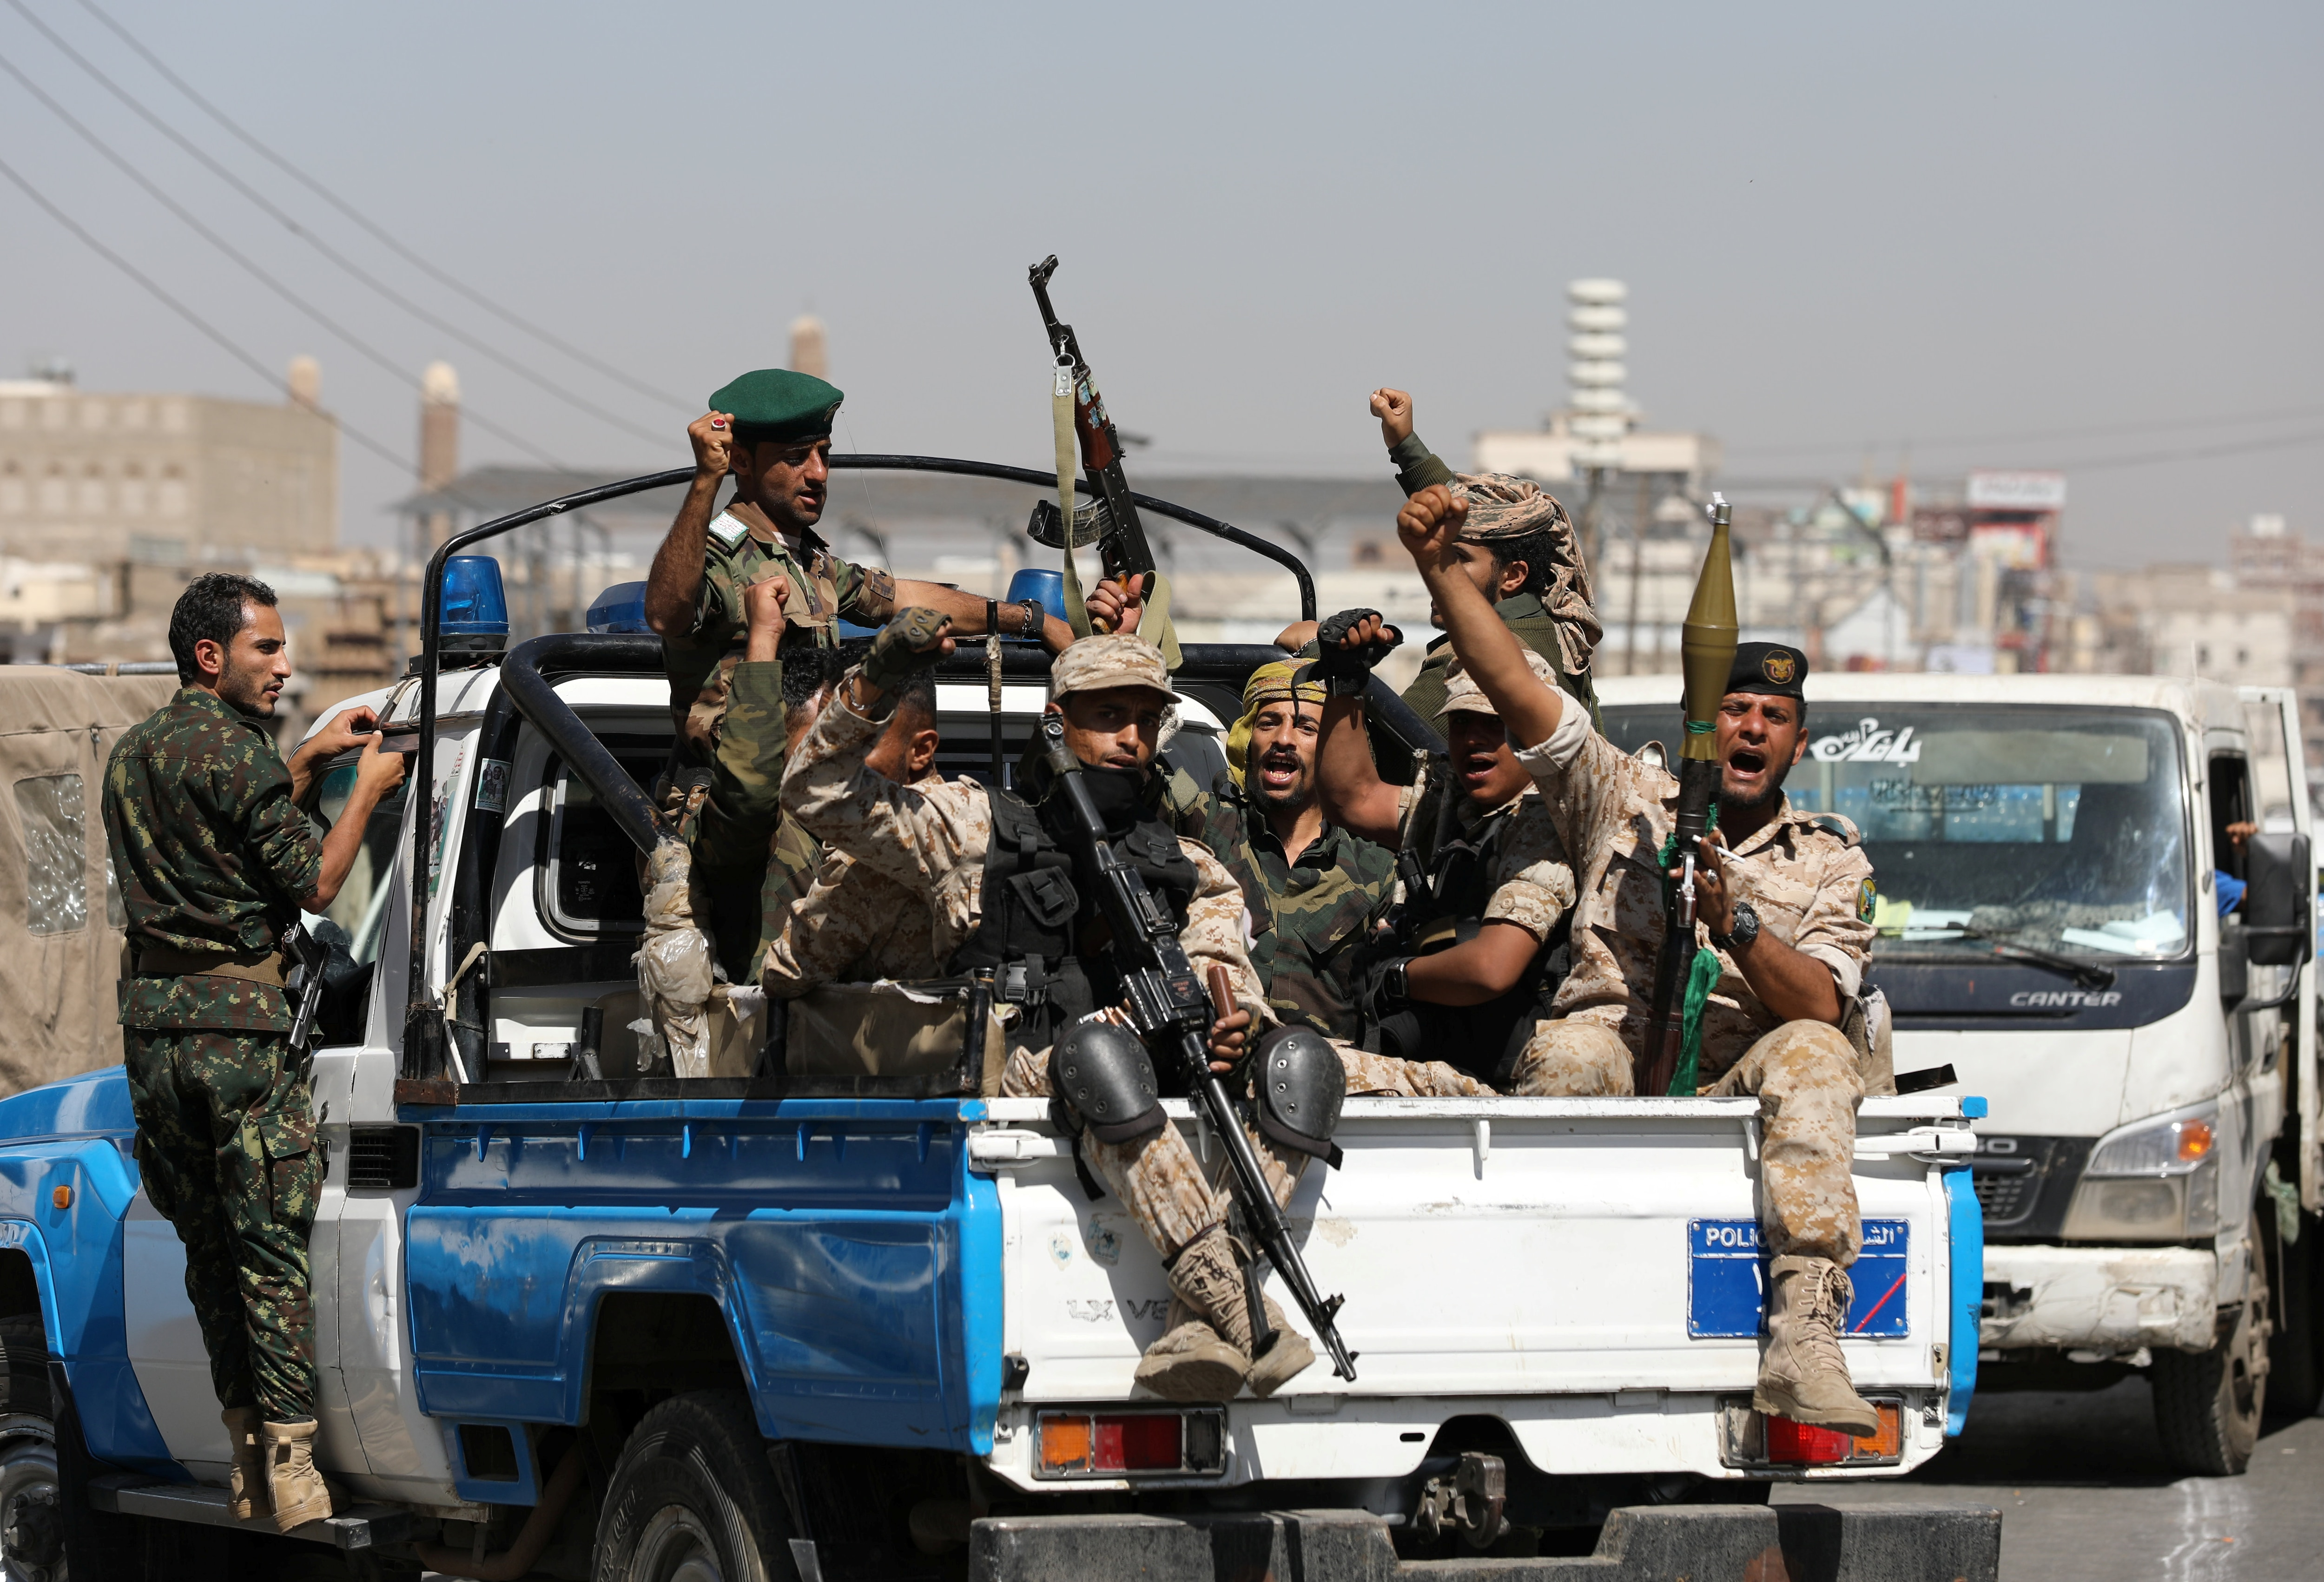 United States to designate Houthis as a foreign terrorist organization